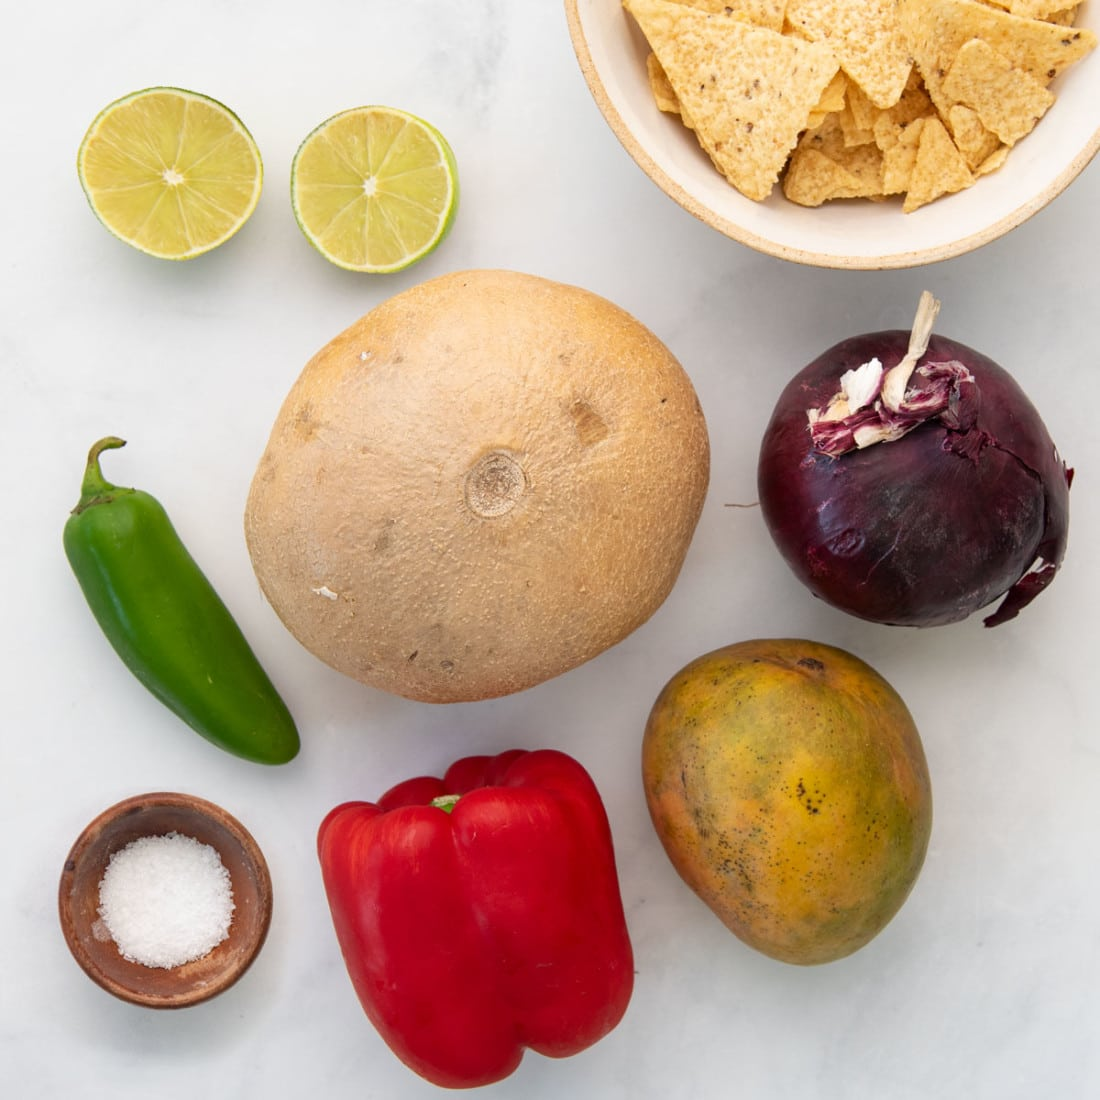 fresh produce, salt, and chips on a white background